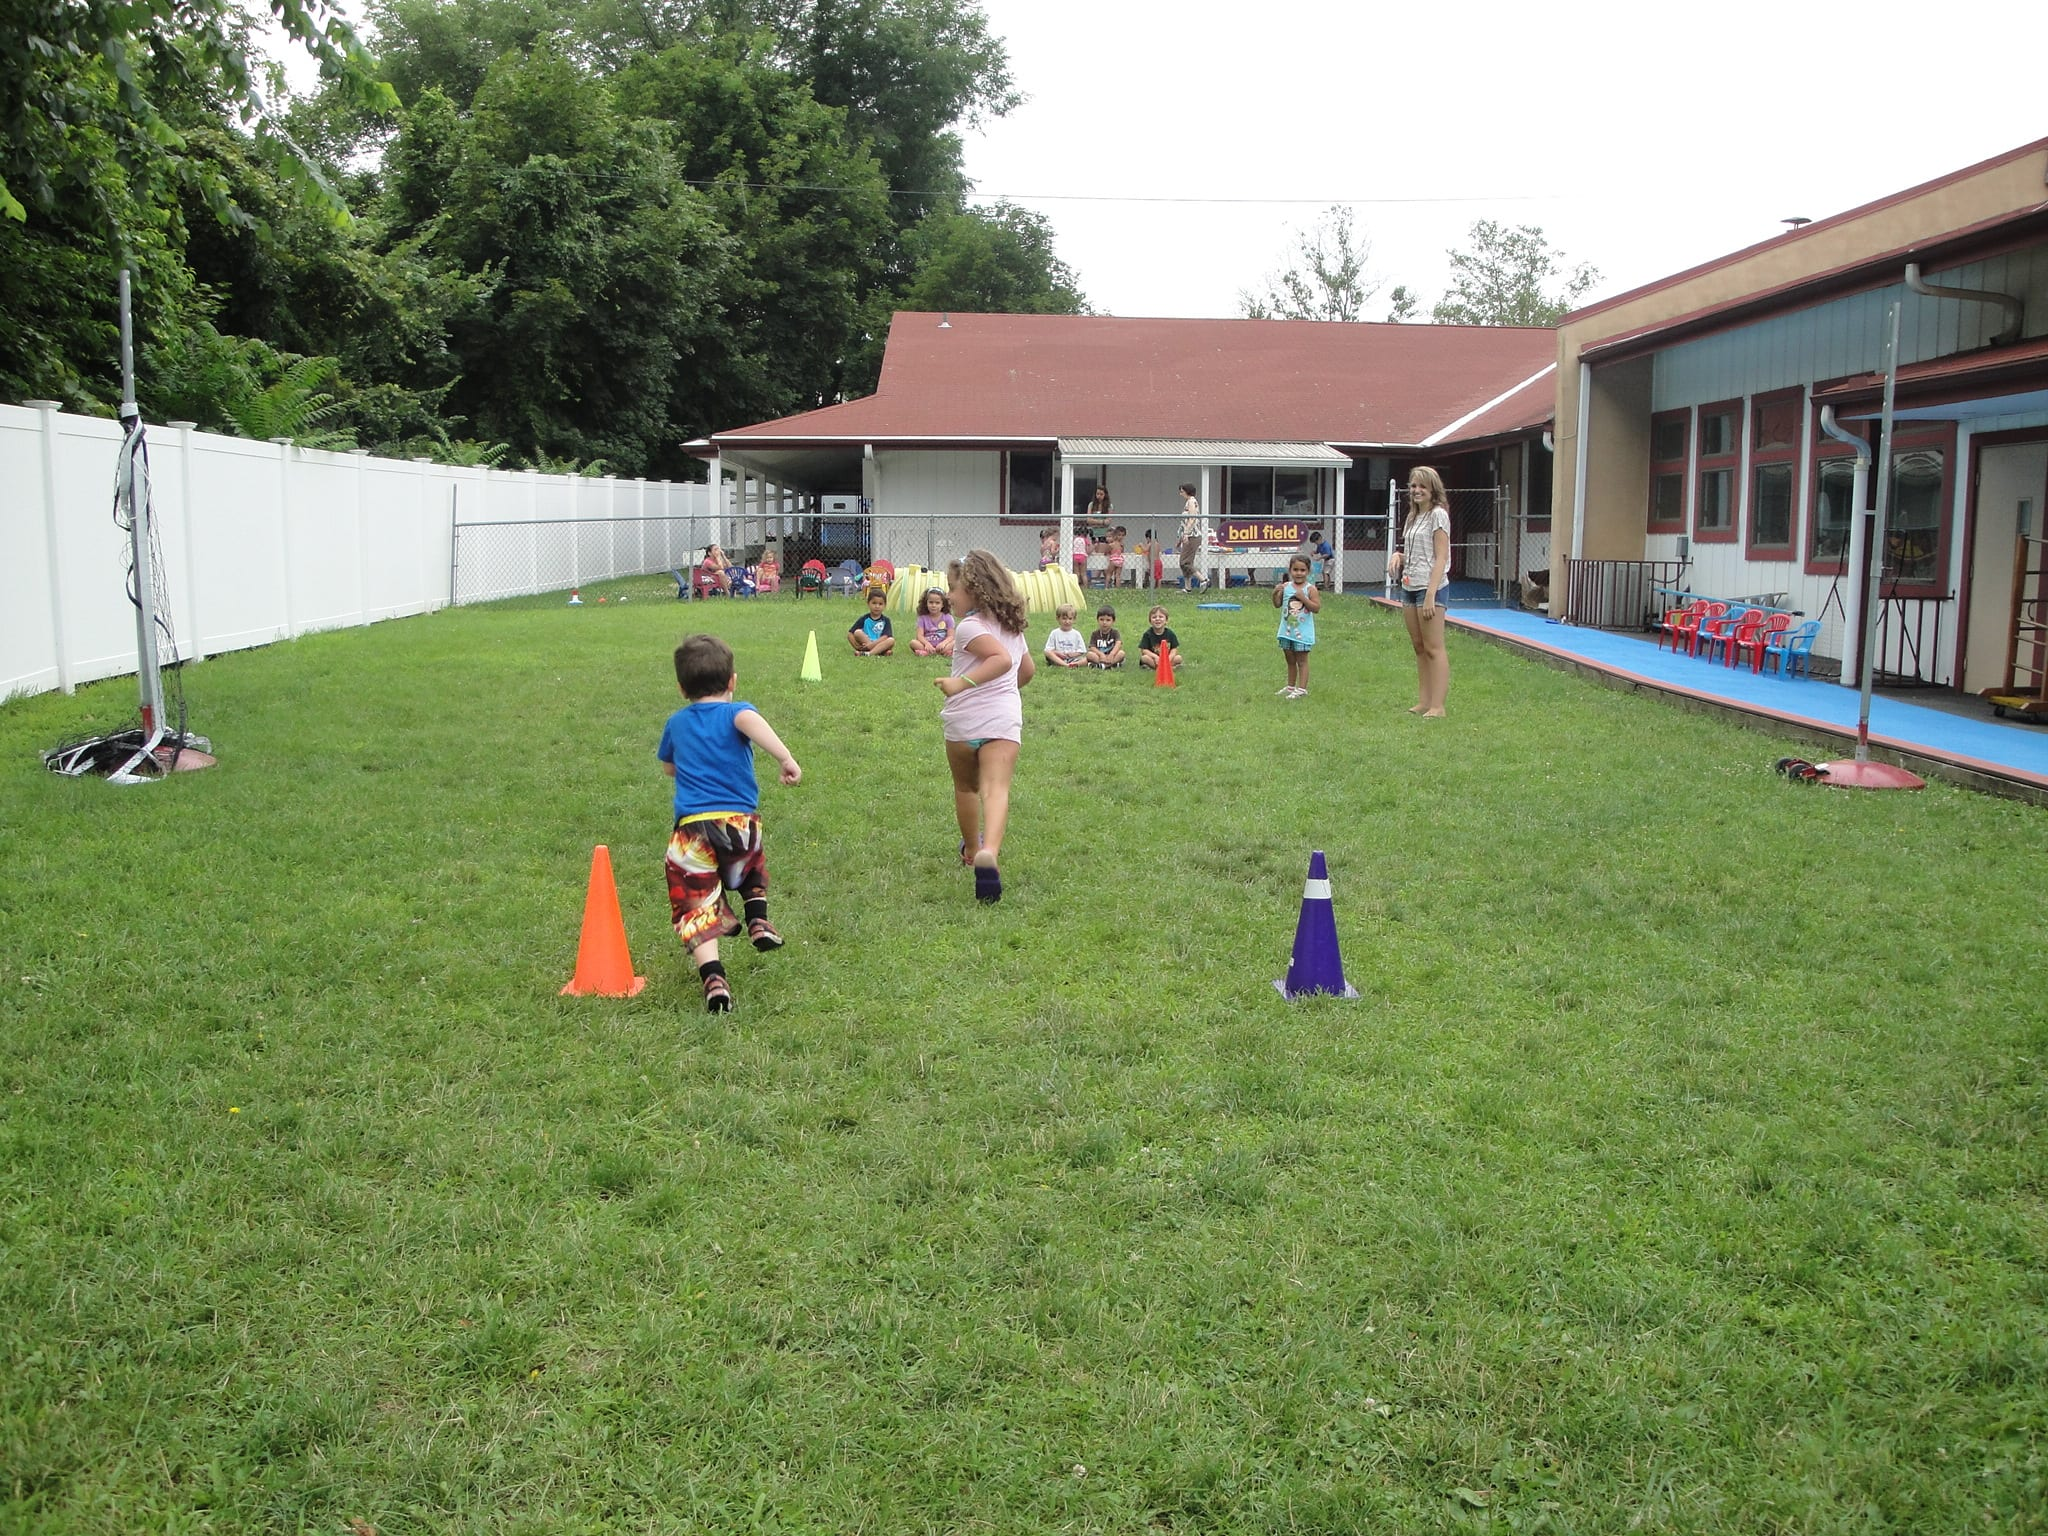 Summer camp kids playing on a field on the tom thumb campus